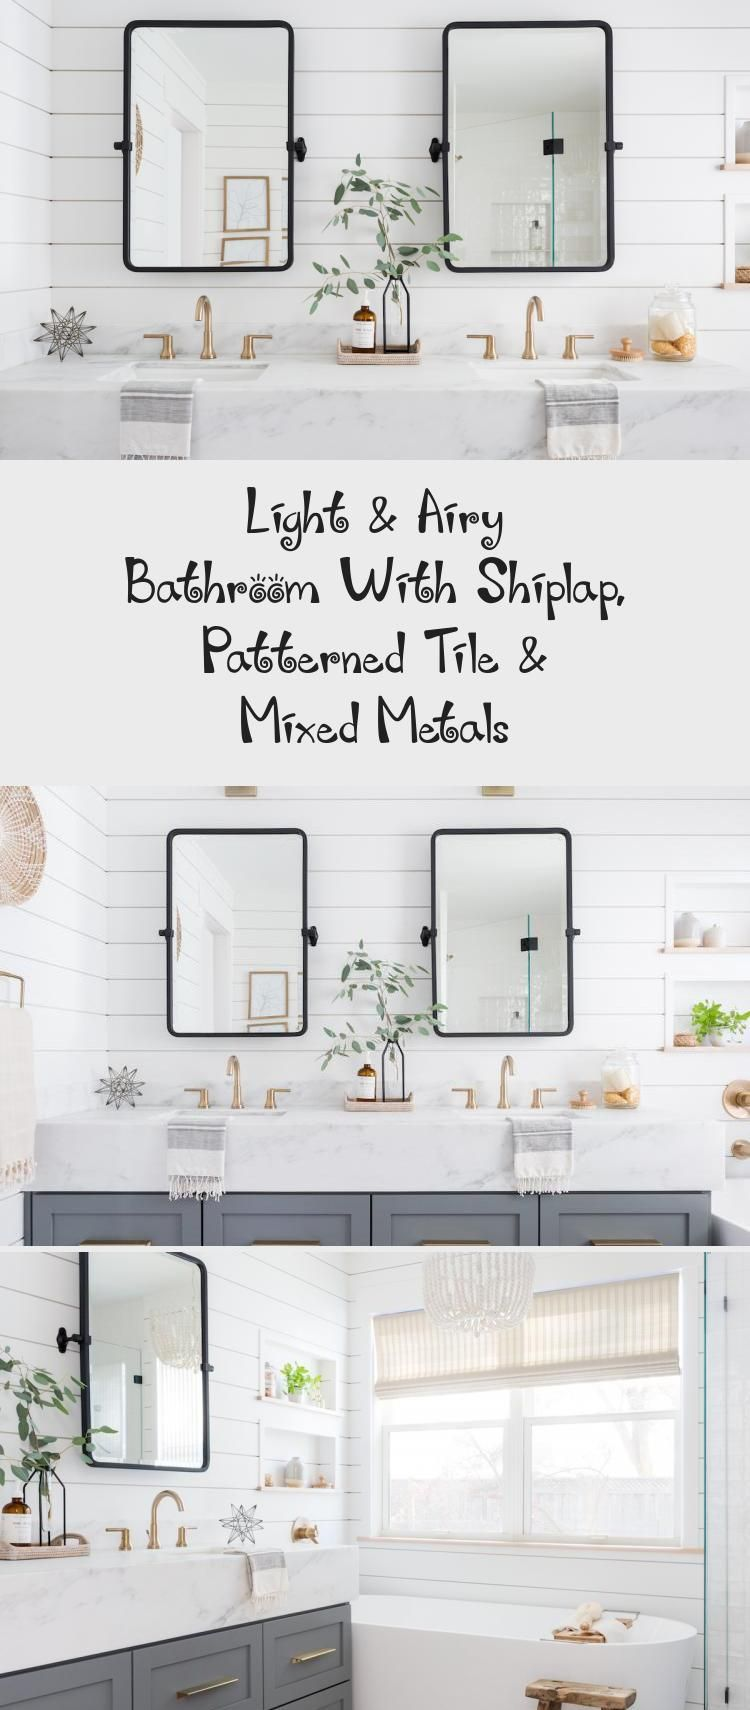 Photo of Light & Airy Bathroom With Shiplap, Patterned Tile & Mixed Metals – Bathroom